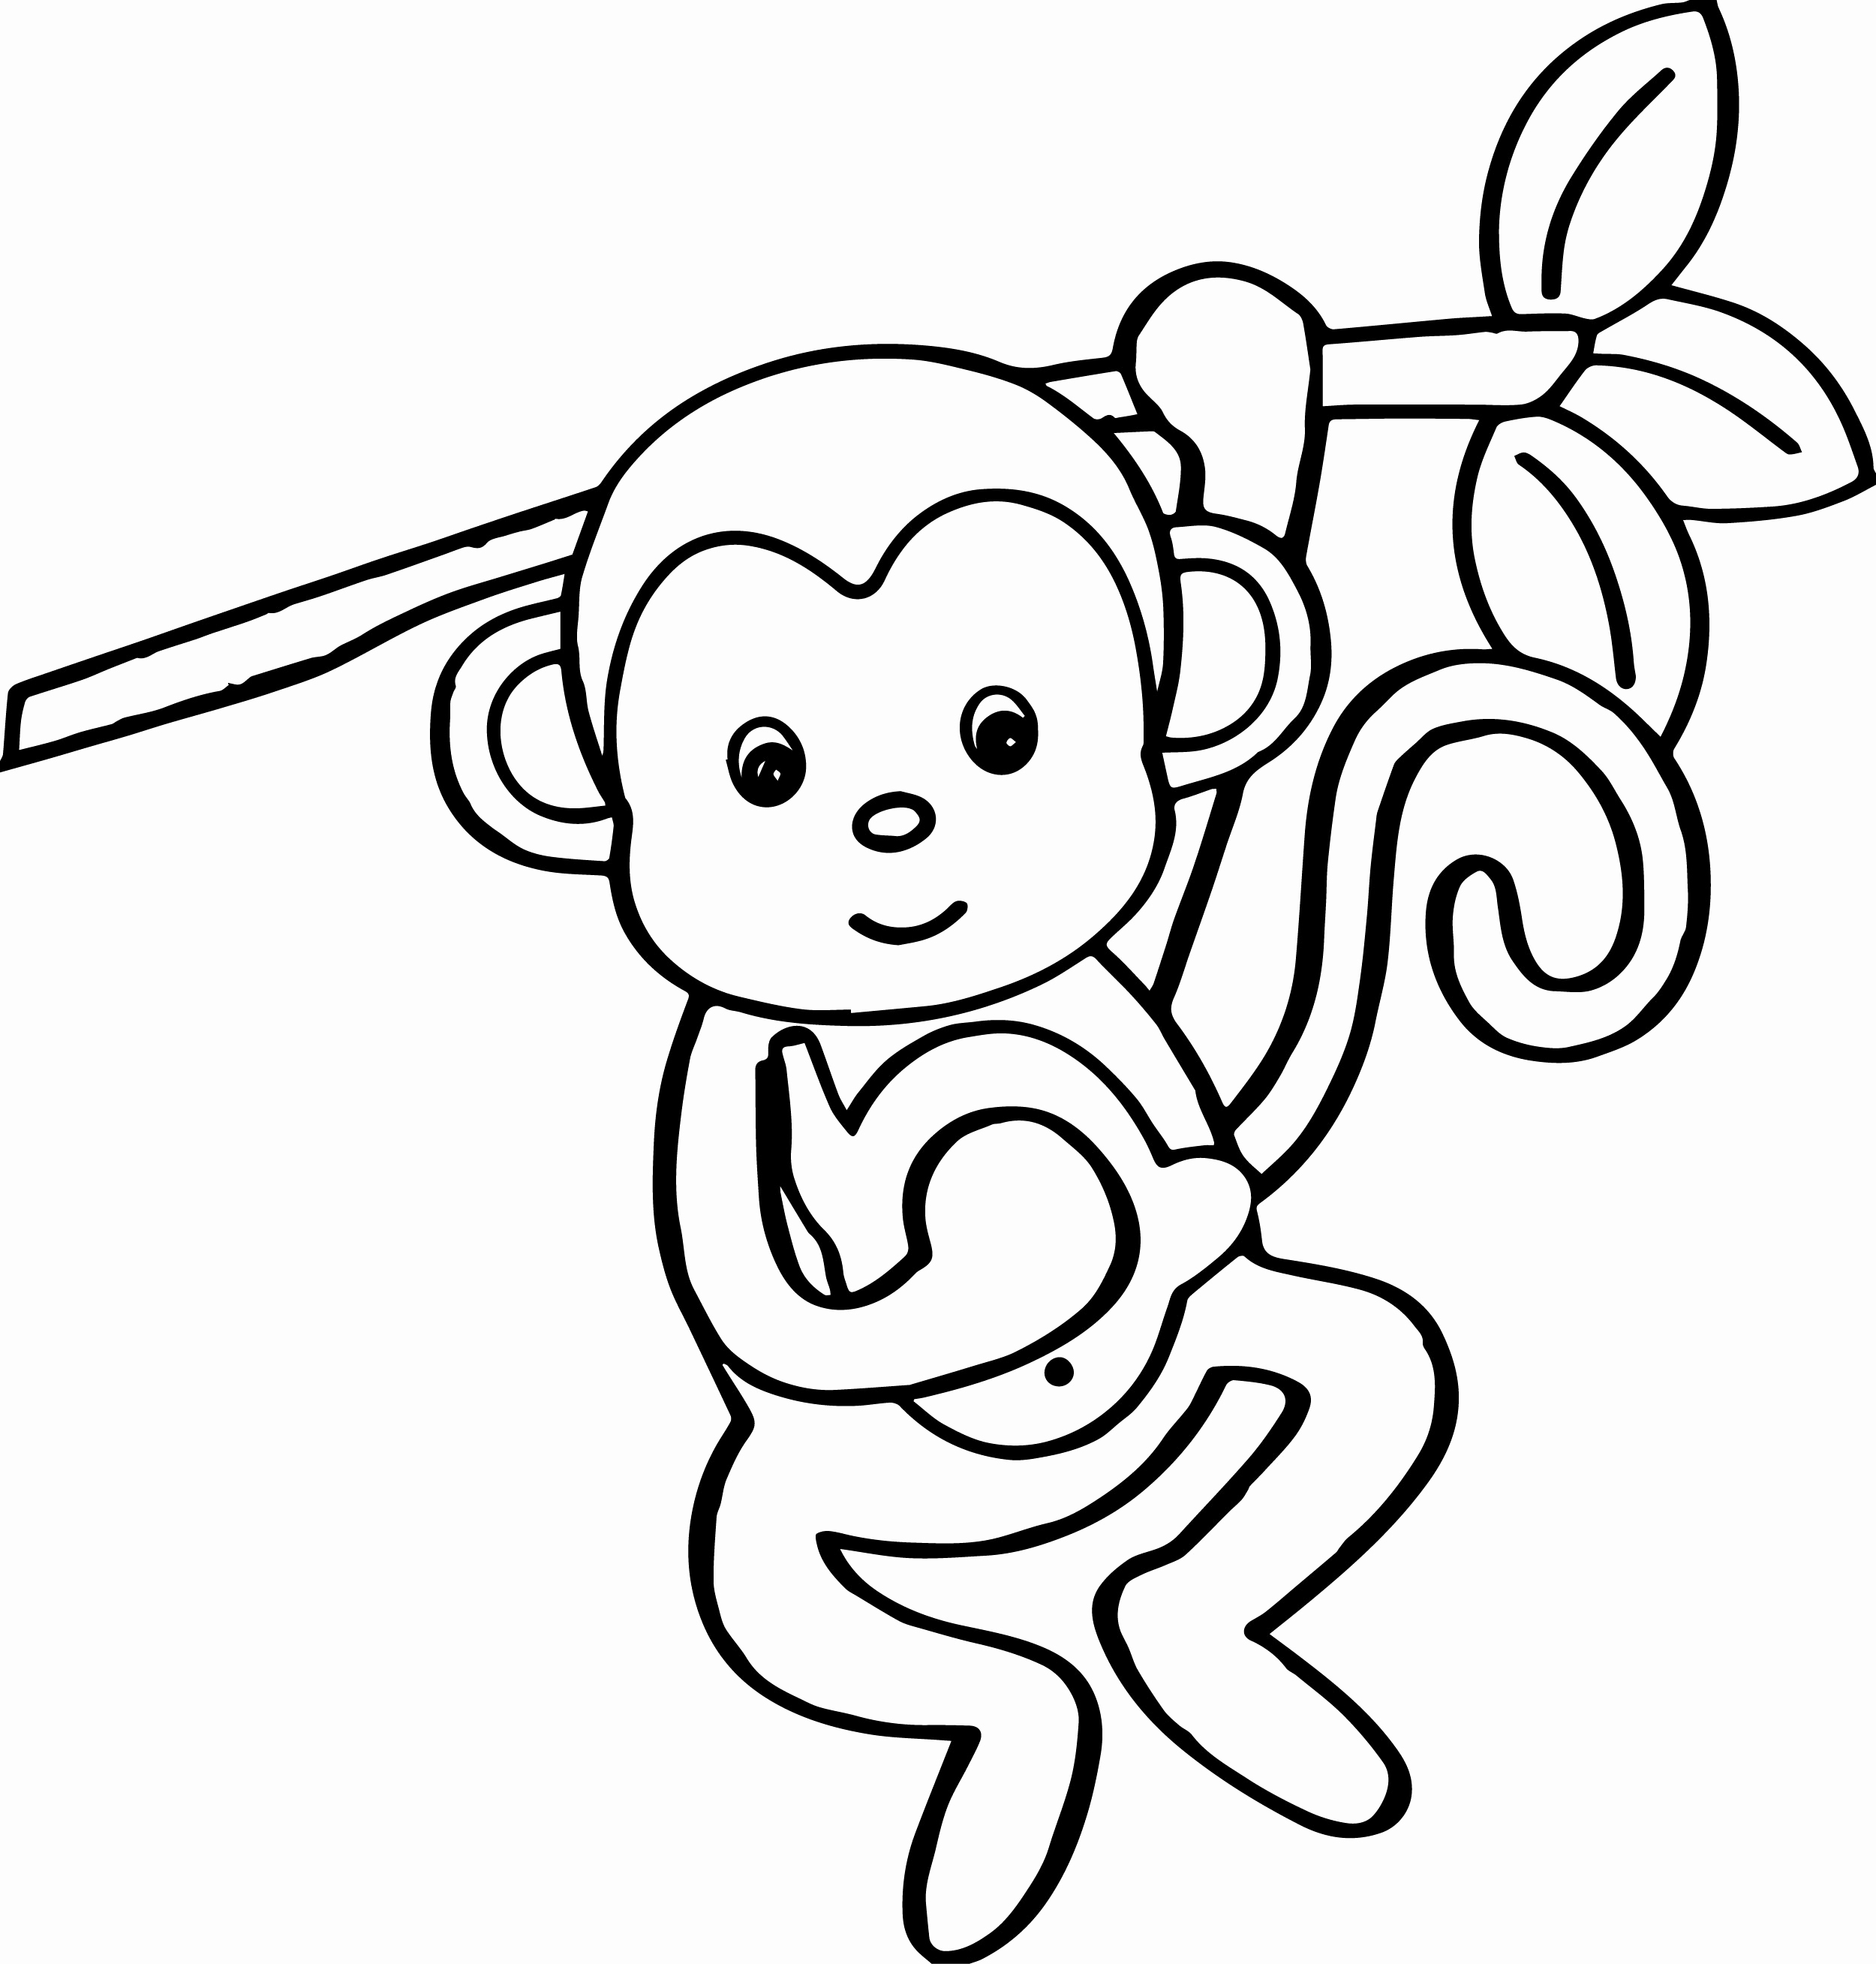 coloring pages of cute things red panda coloring pages cute baby panda coloring pages of pages cute things coloring